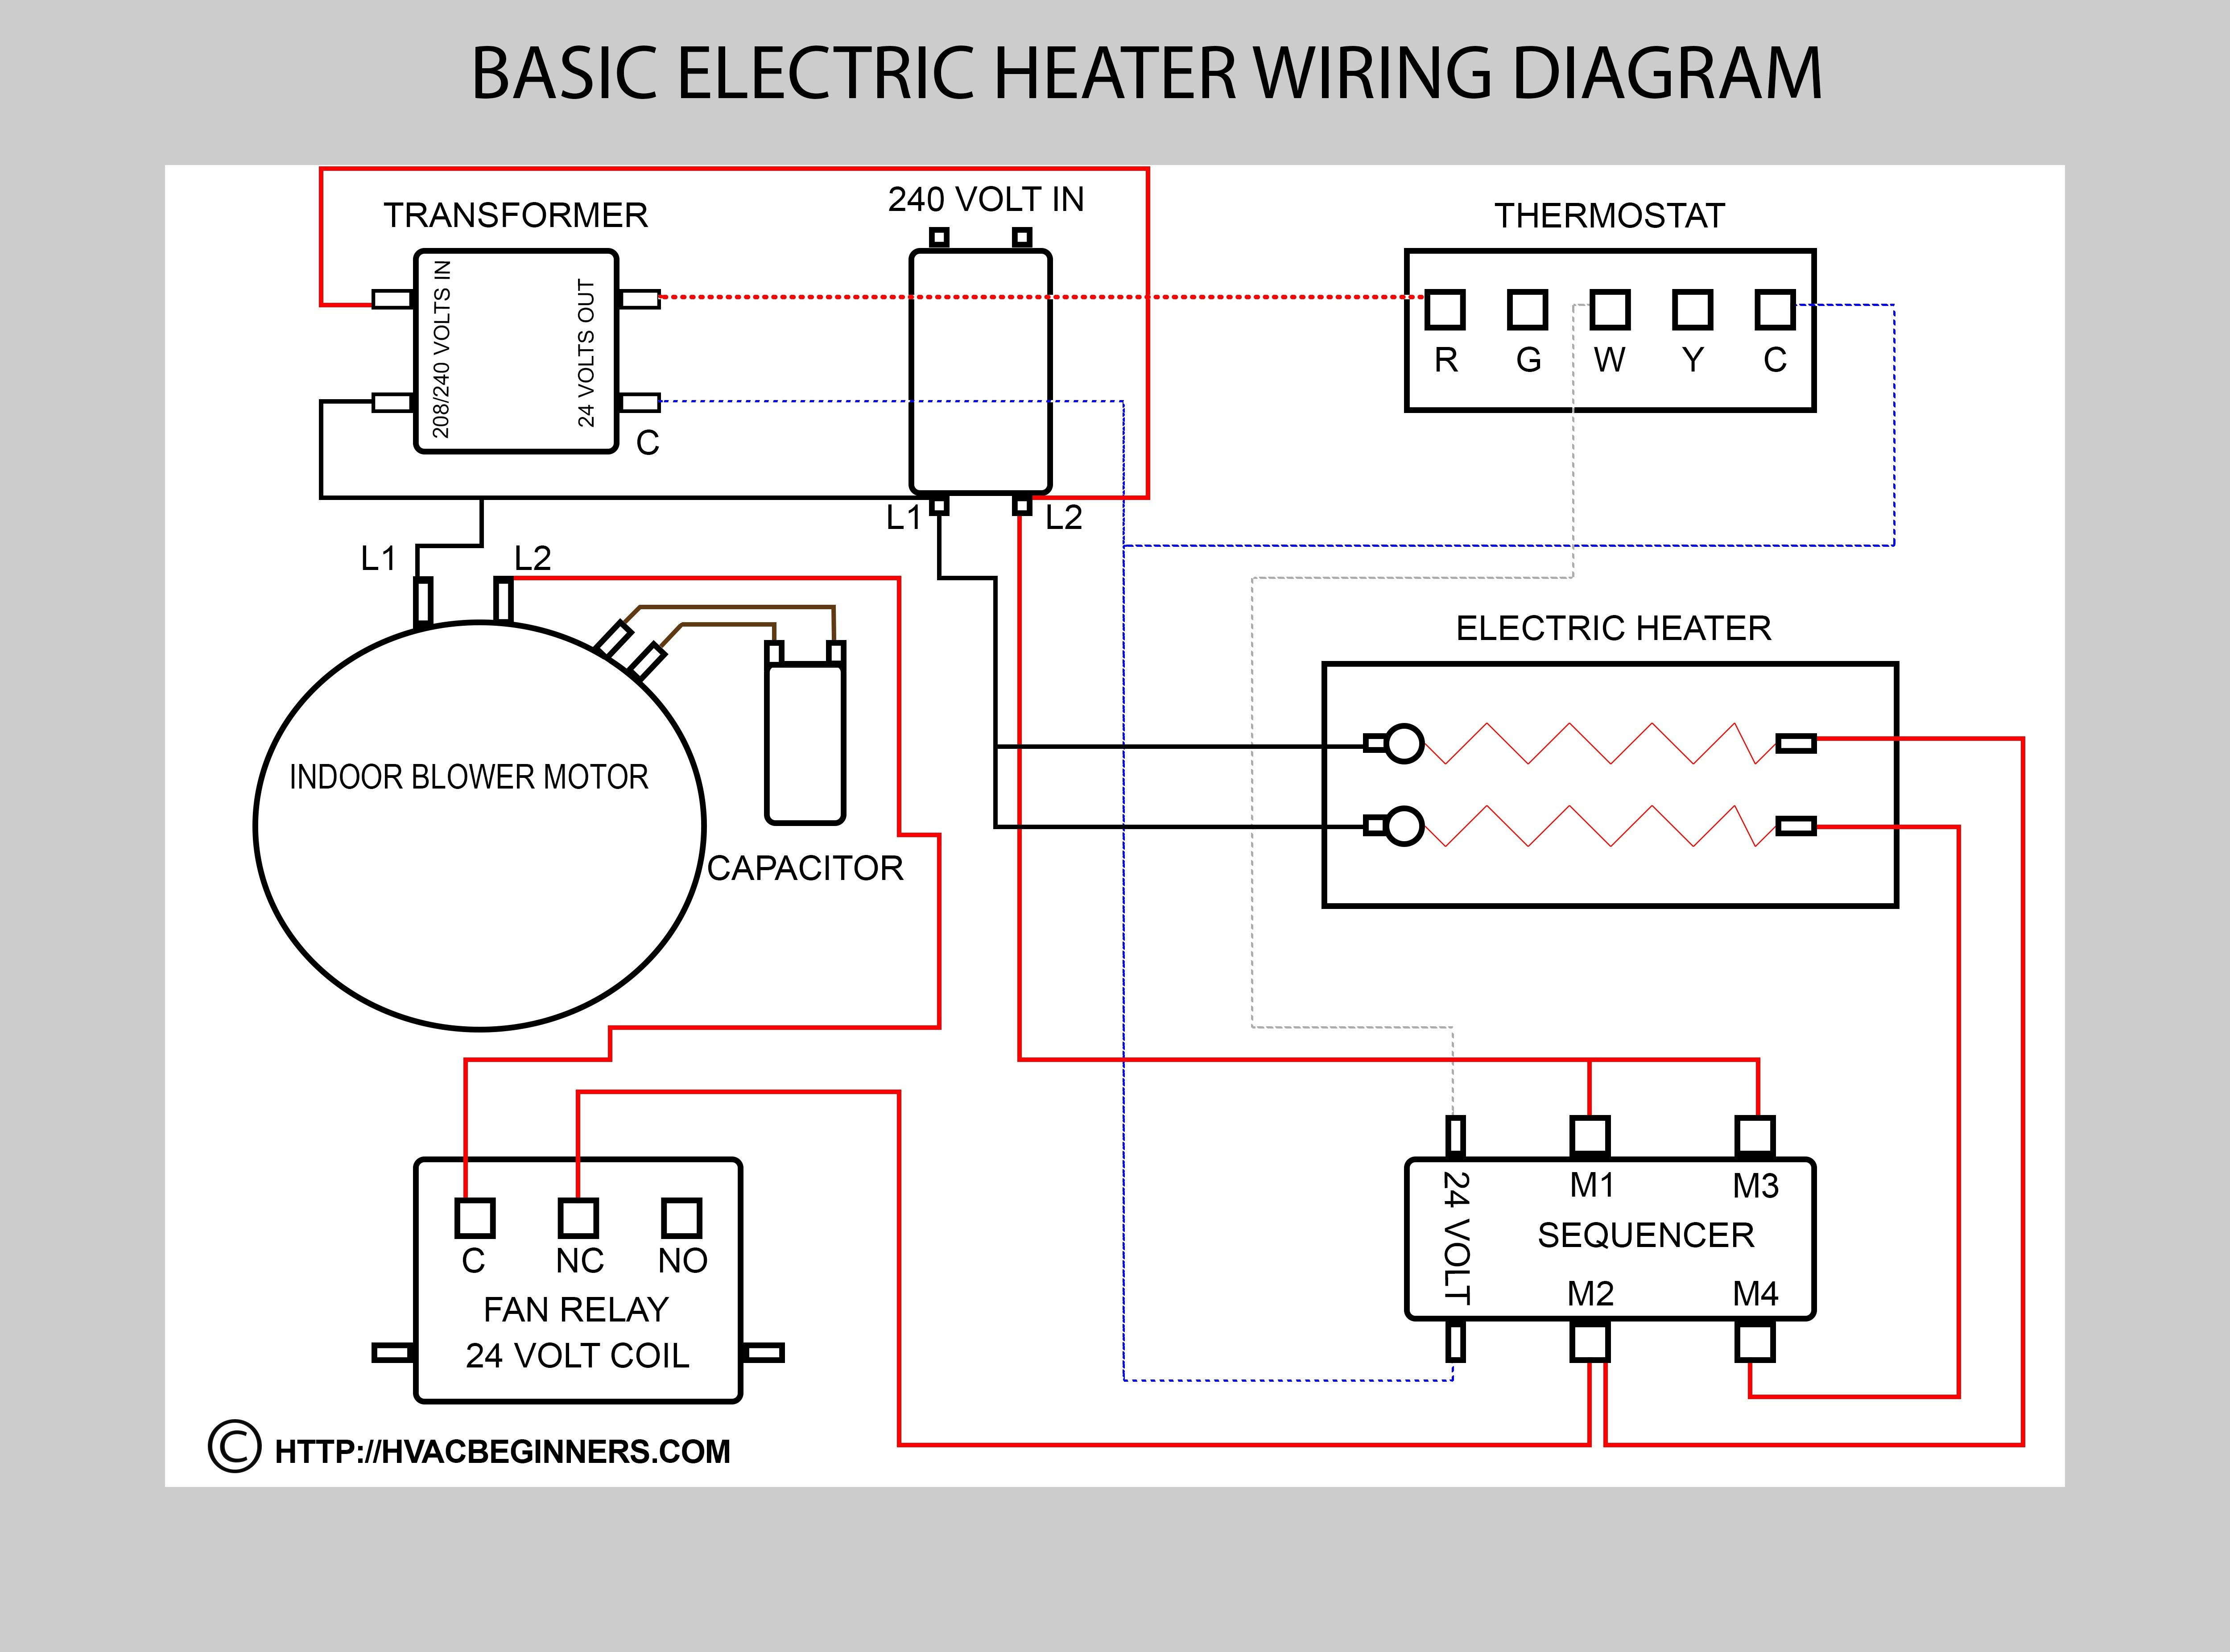 Air Conditioner Wiring Diagram Wiring Diagrams Lg Air Conditioner